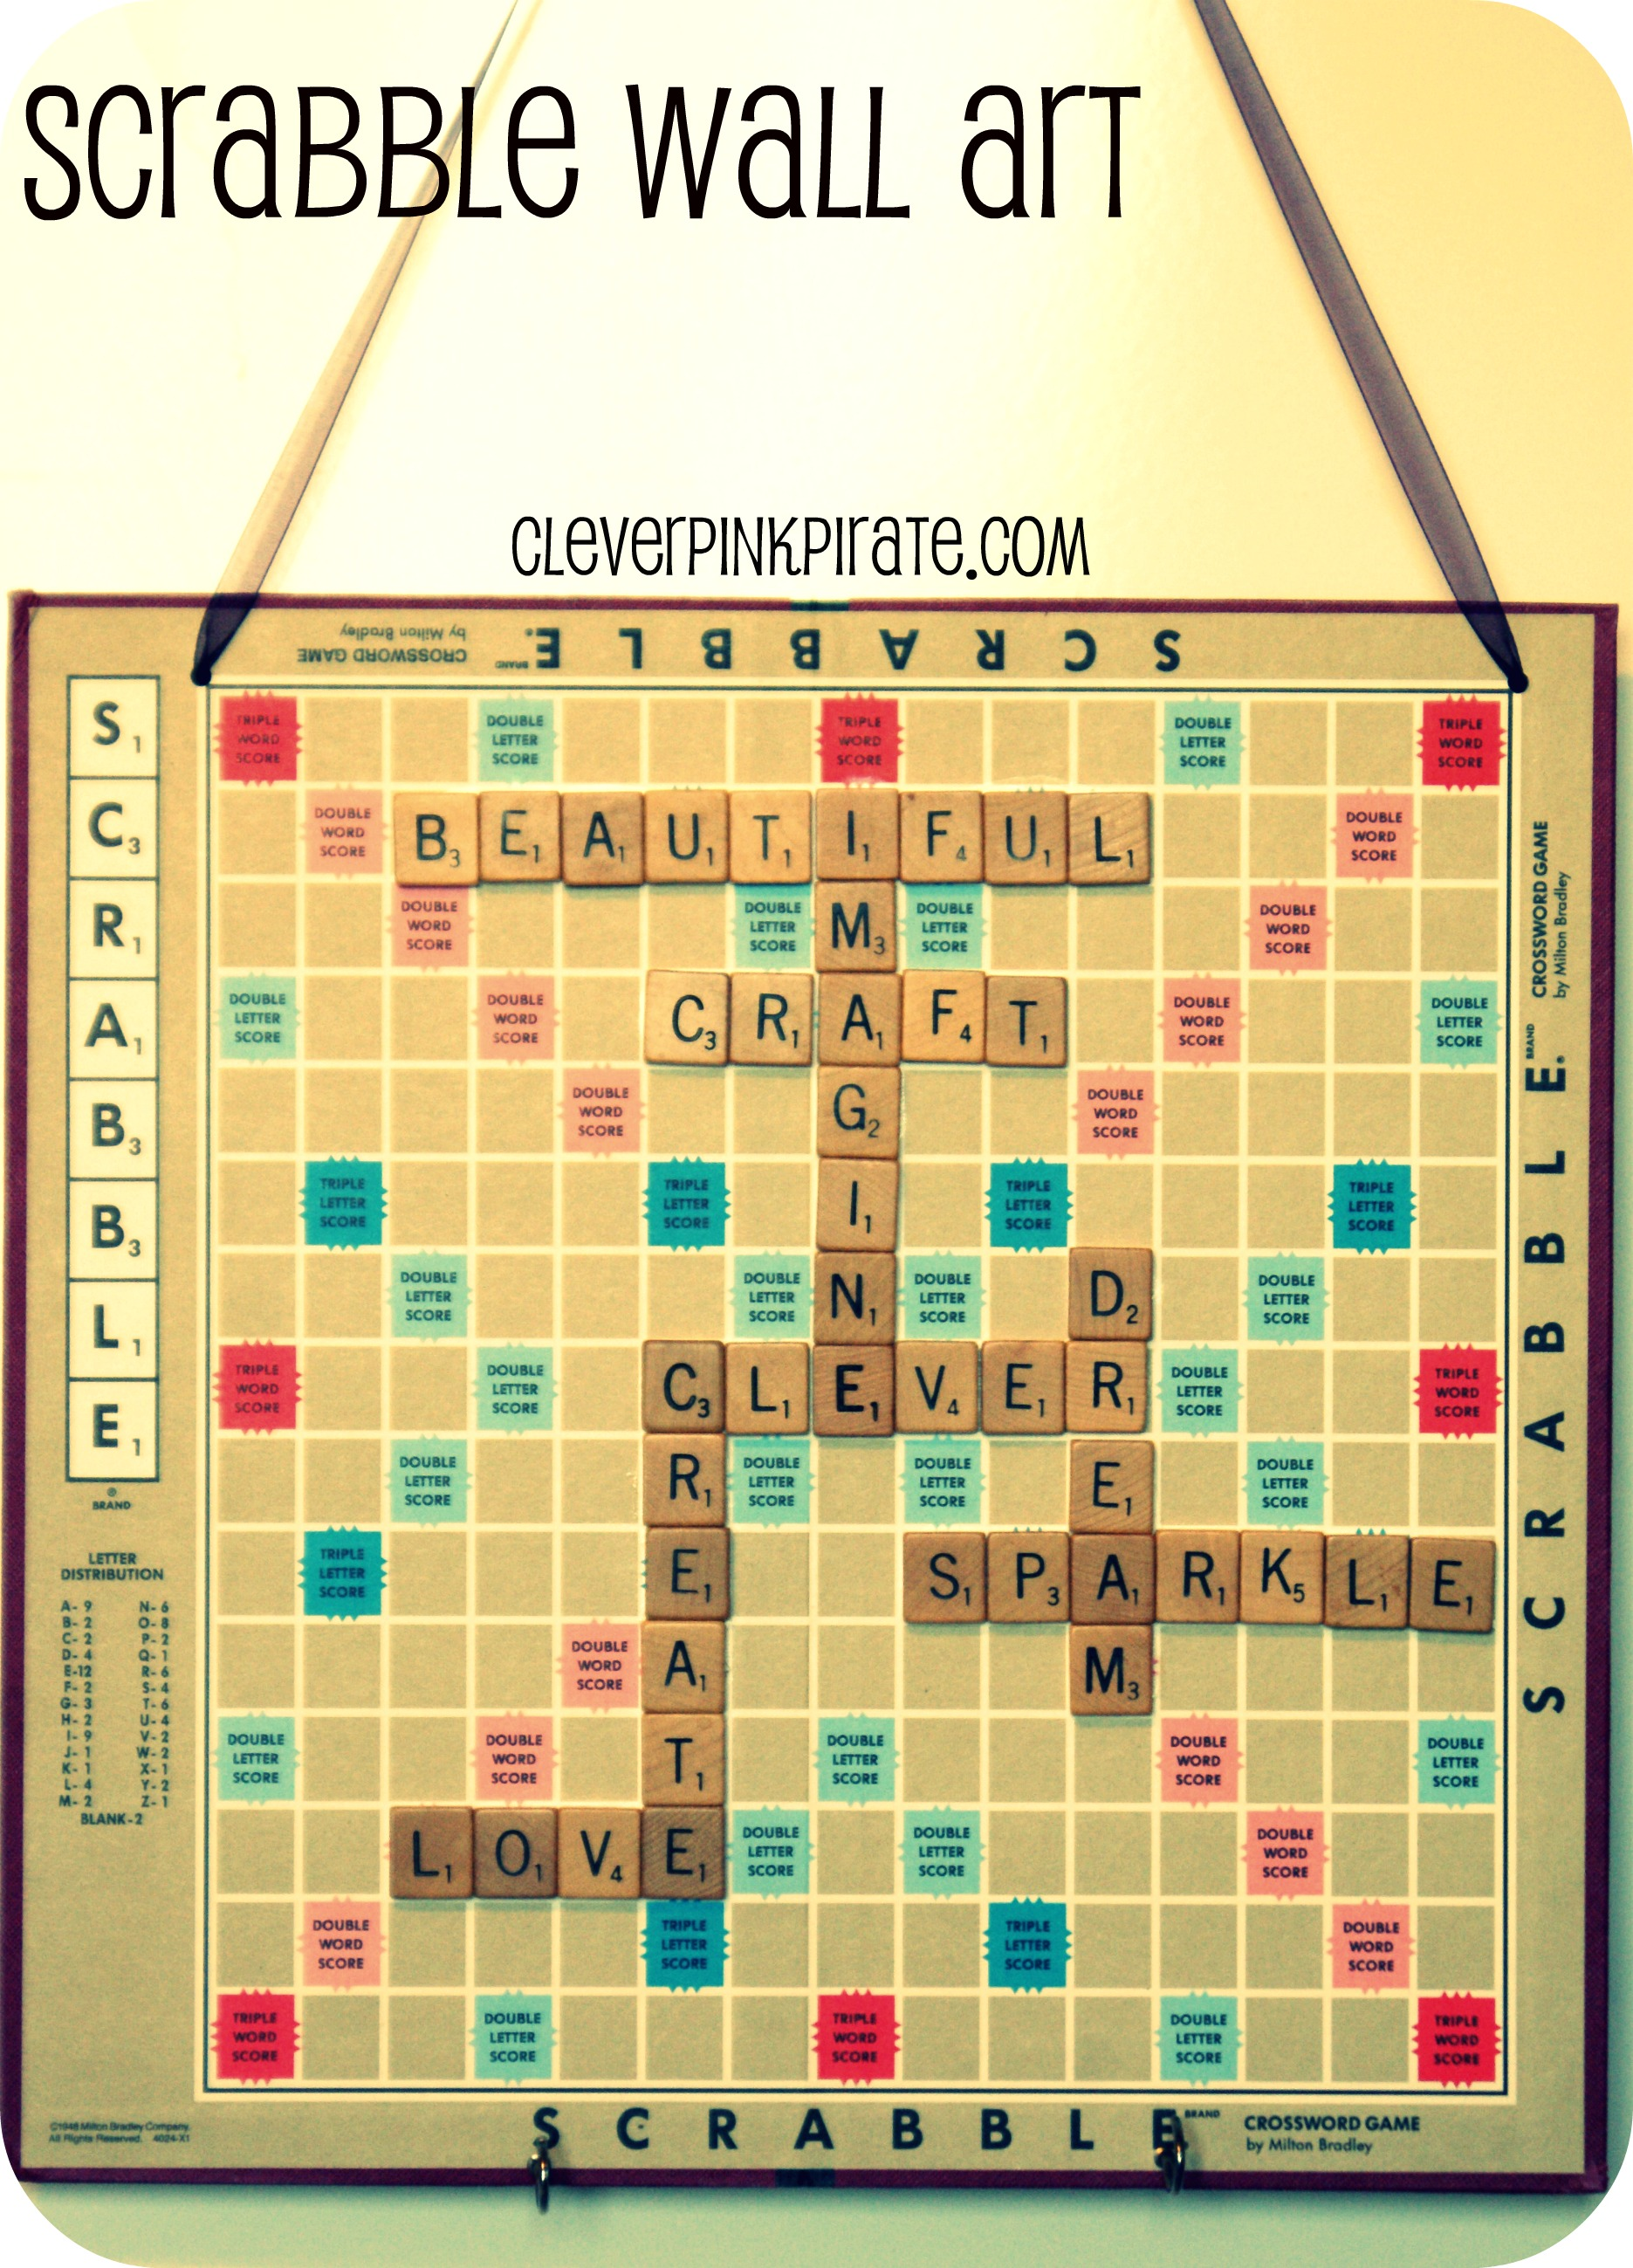 Upcycled Diy Scrabble Wall Art For The Craft Room Office